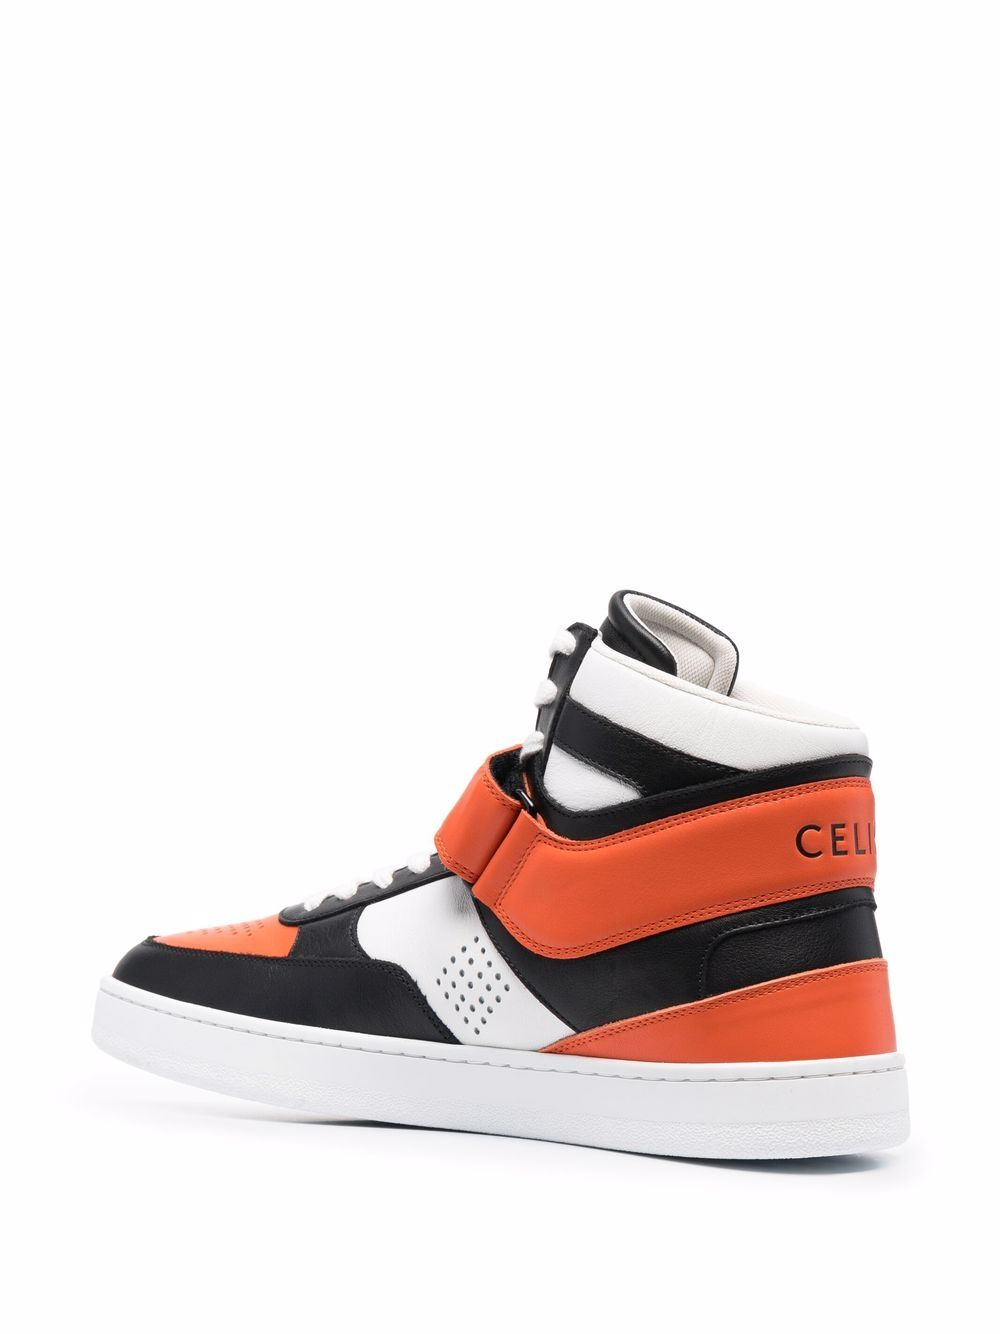 Picture of Celine   High Sneaker Ct-03 With Scratch In Calfskin